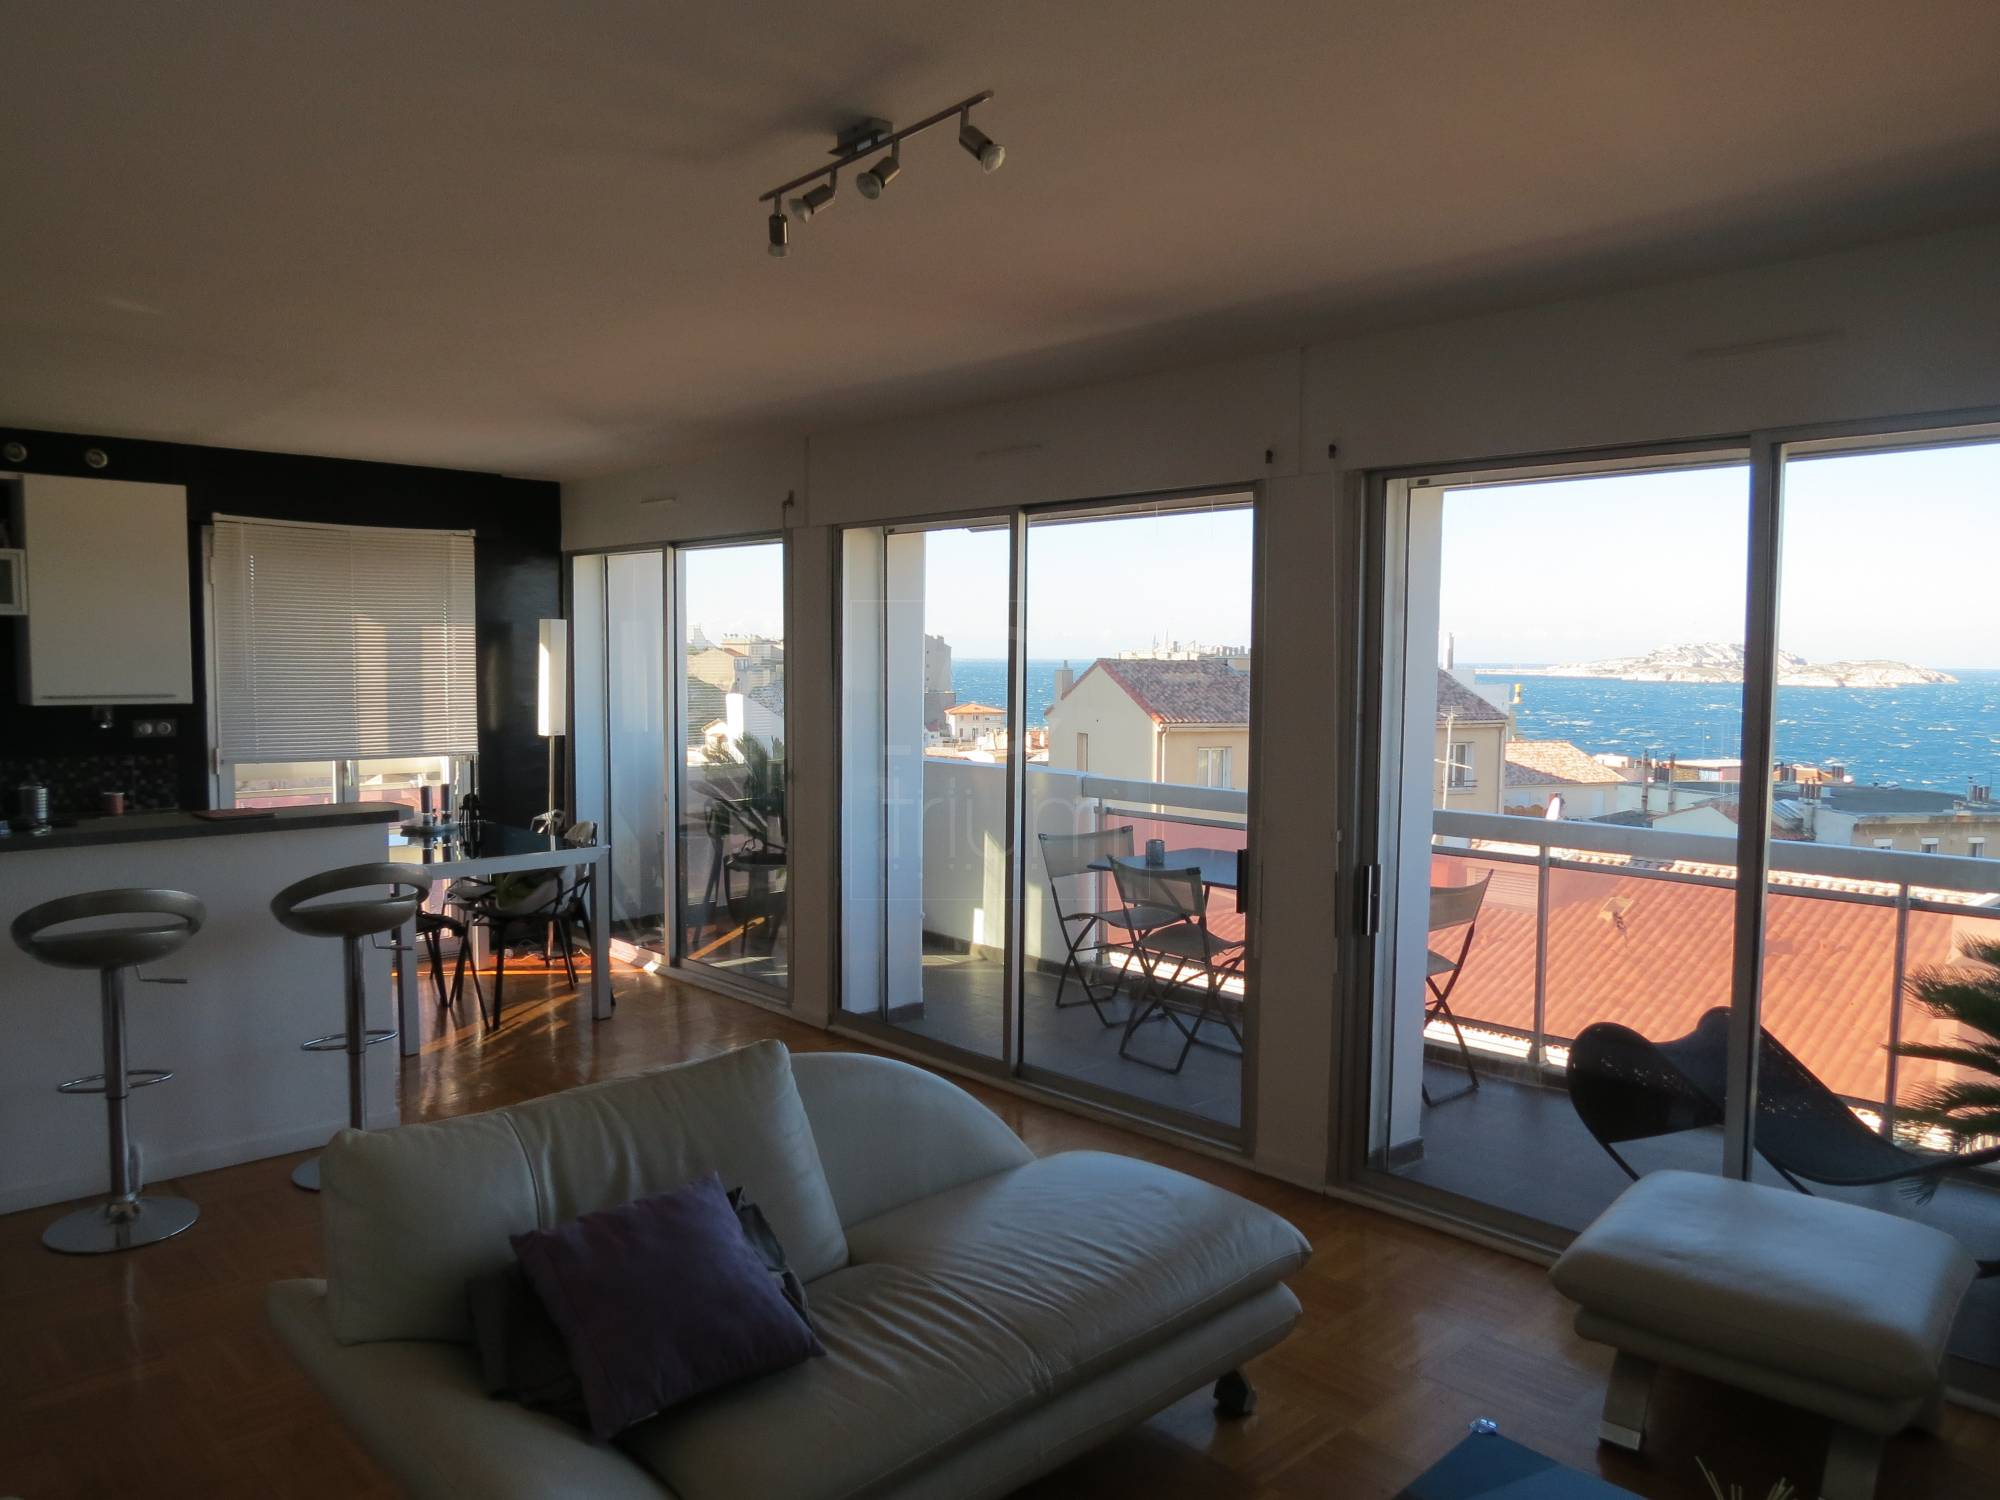 Location appartement La Rochelle : prendre son temps